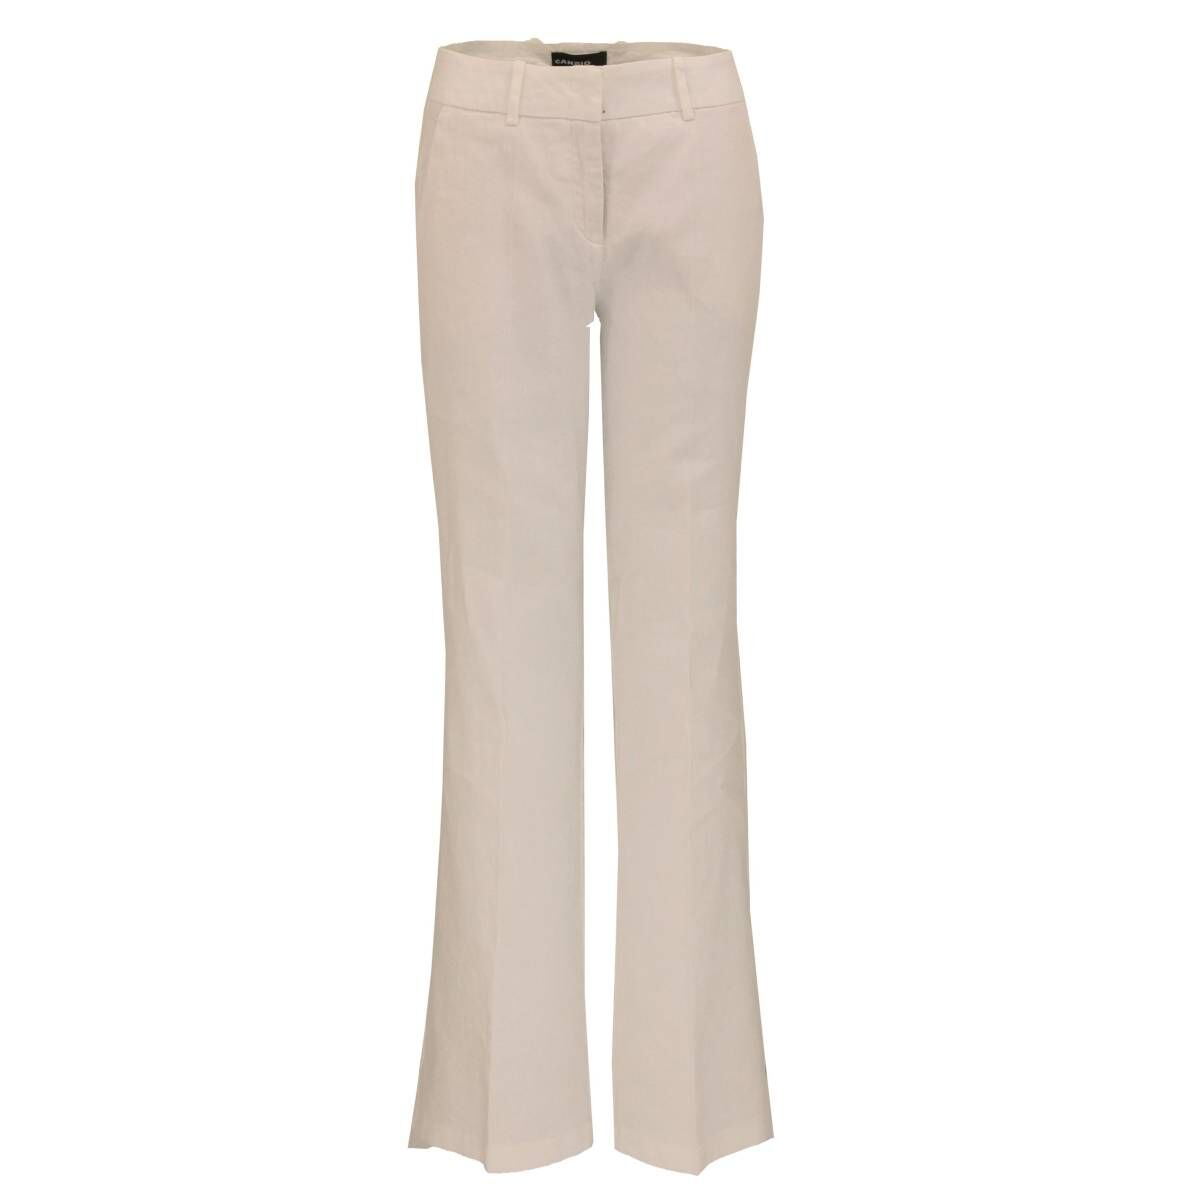 Cambio trousers MALICE 8003 0317-00 Sand by Penninkhoffashion.com